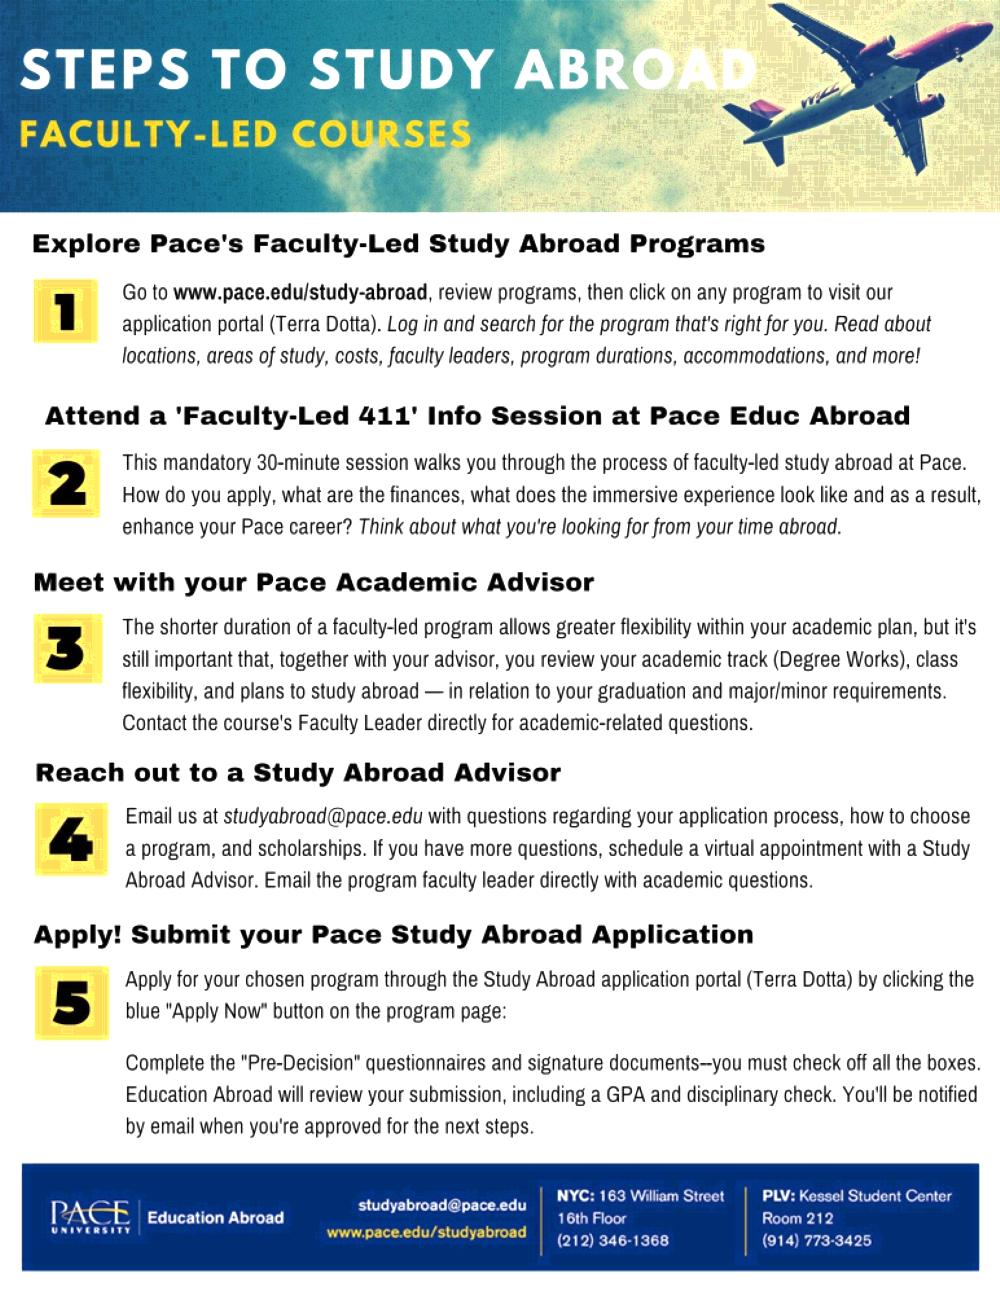 Steps to Faculty-Led Study Abroad, pg 1